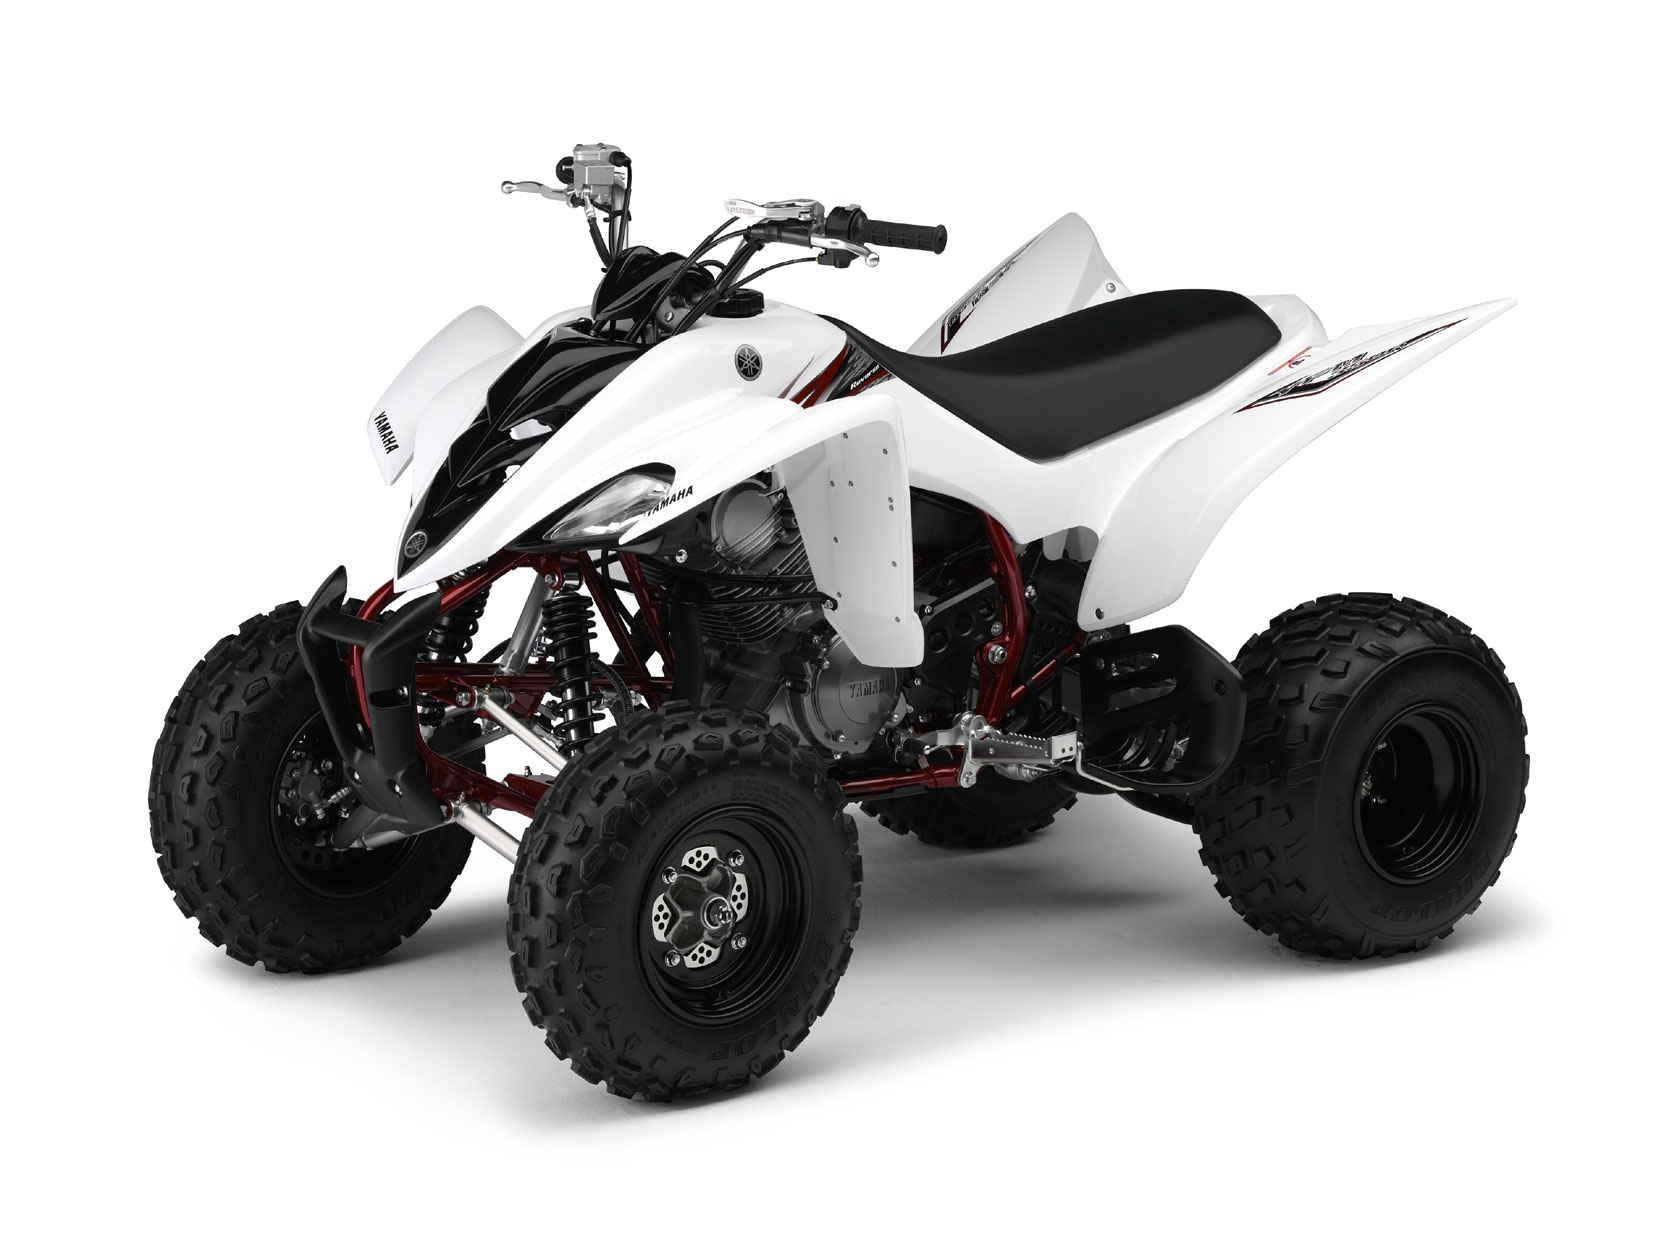 yamaha raptor 350 specs 2008 2009 autoevolution. Black Bedroom Furniture Sets. Home Design Ideas